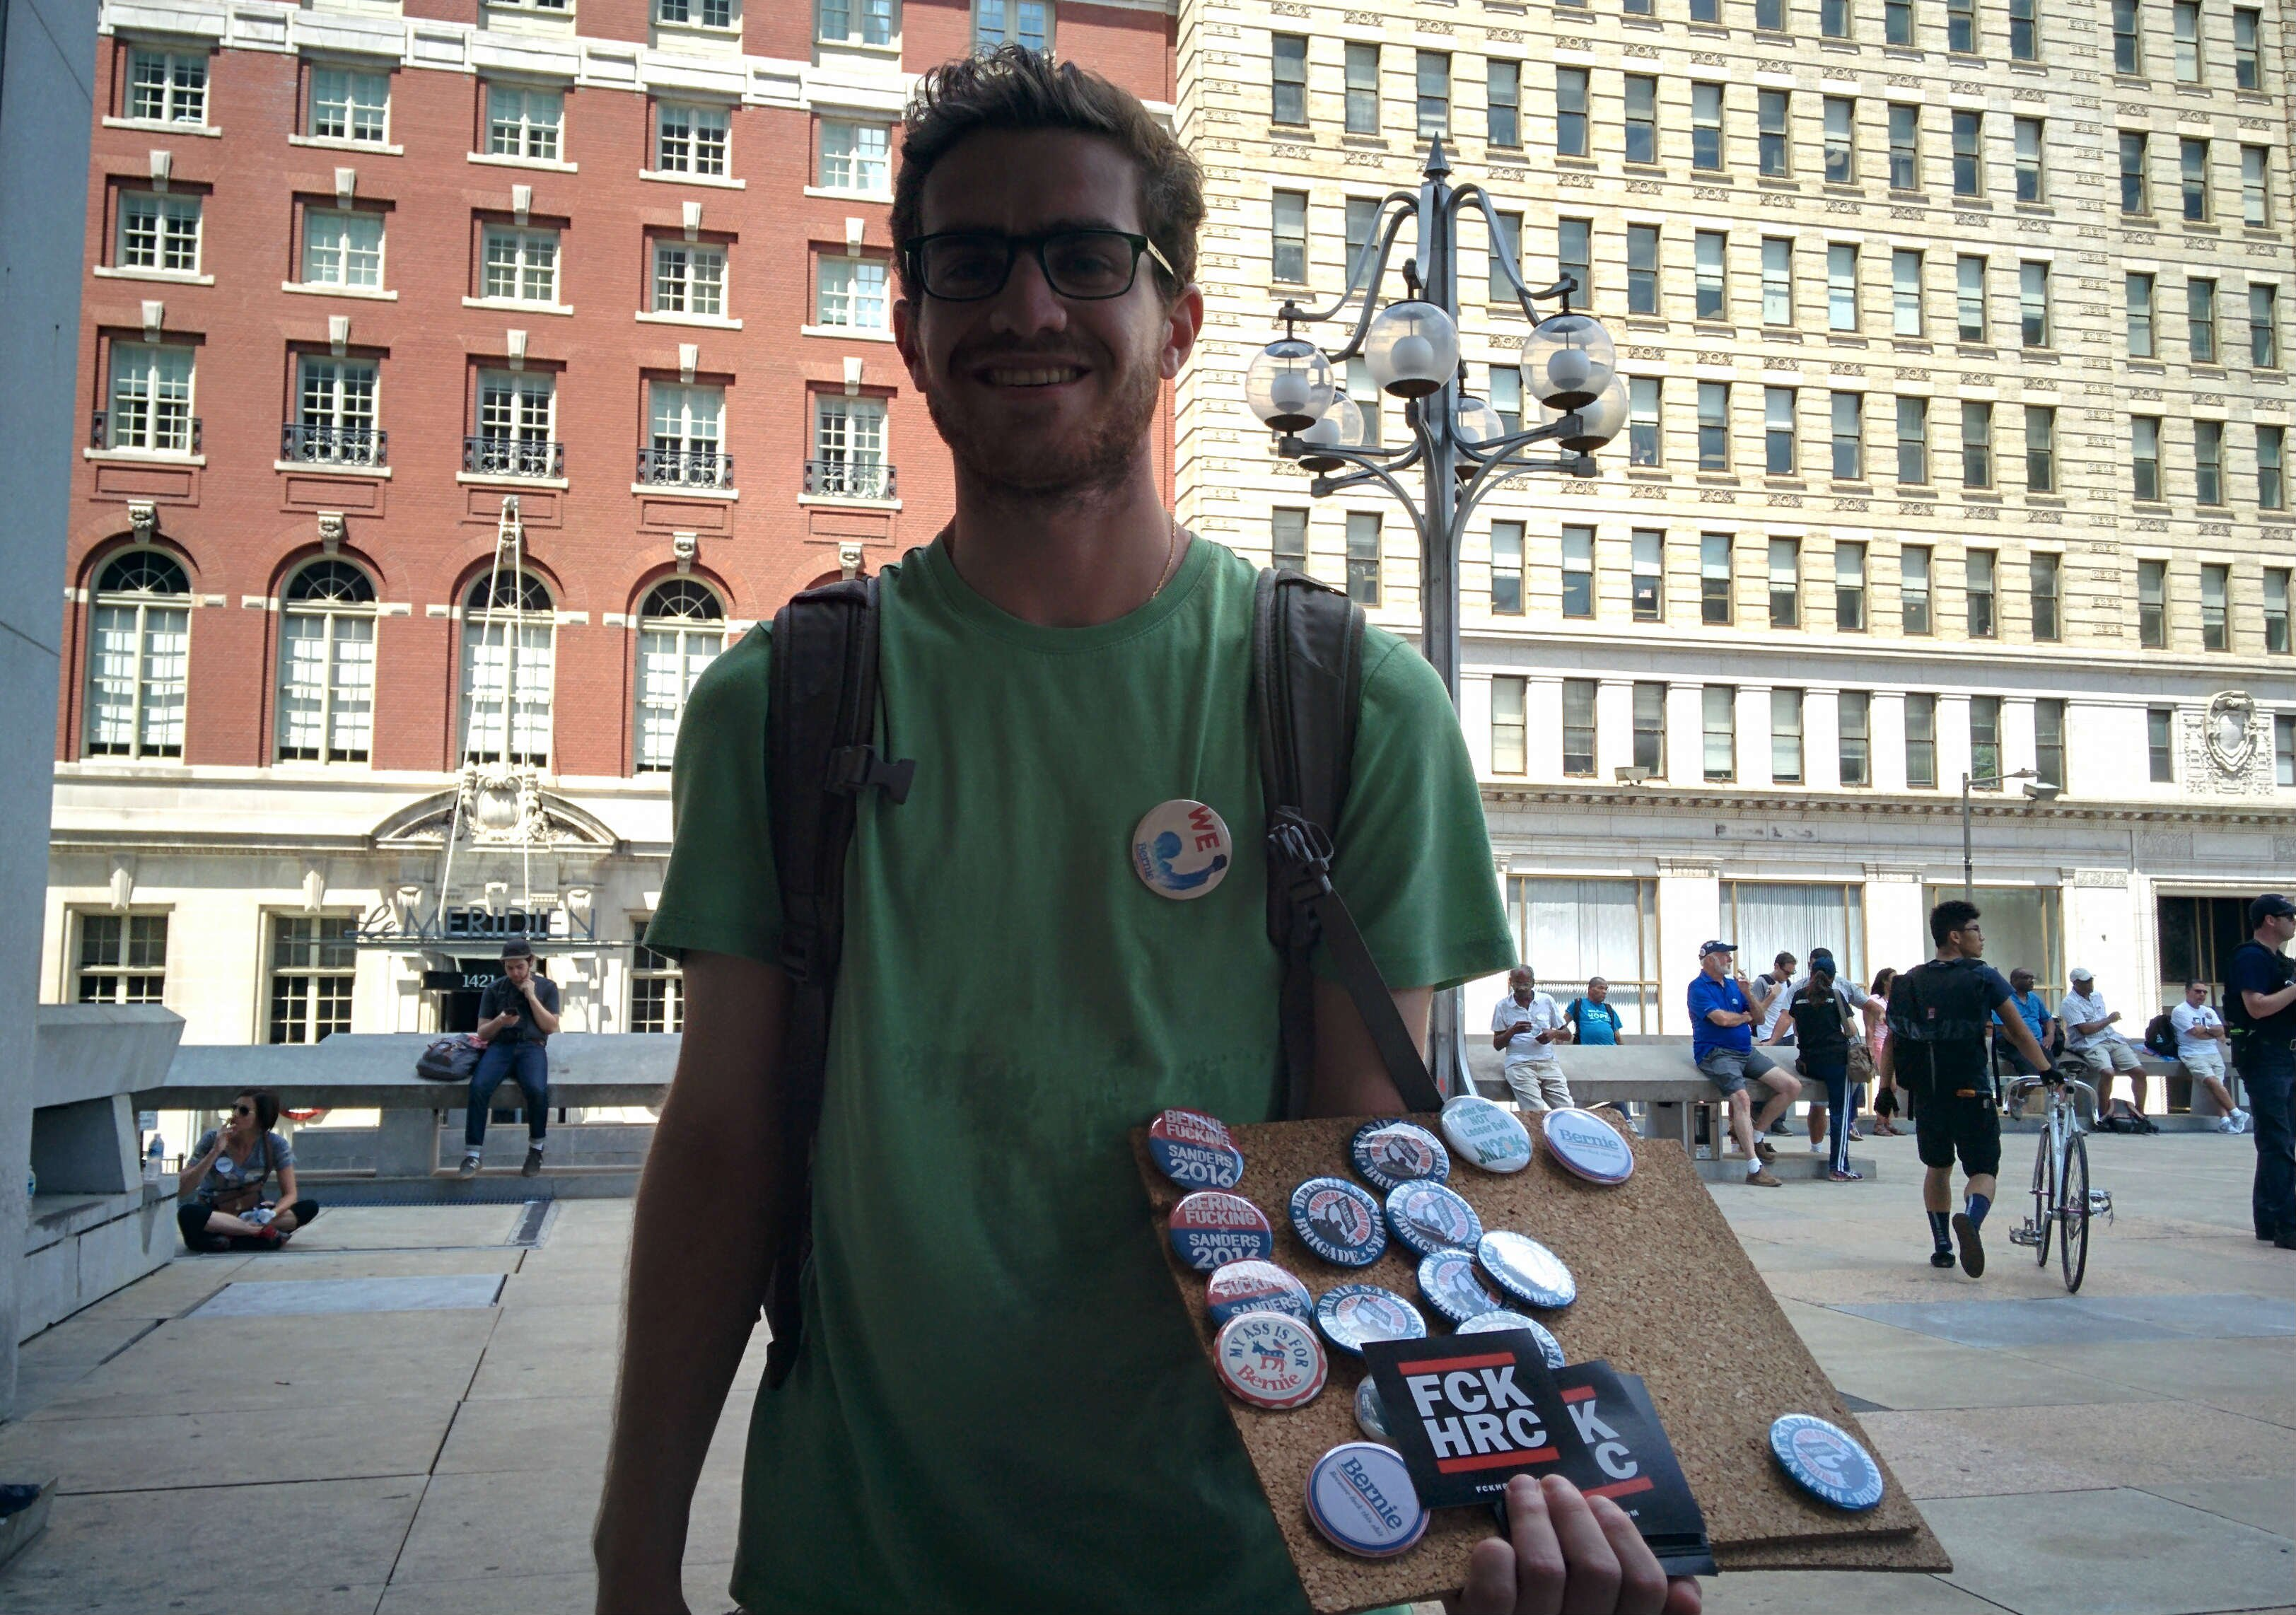 DNC-Protestors-Show-up-views-BODY-Brian selling stuff.jpg